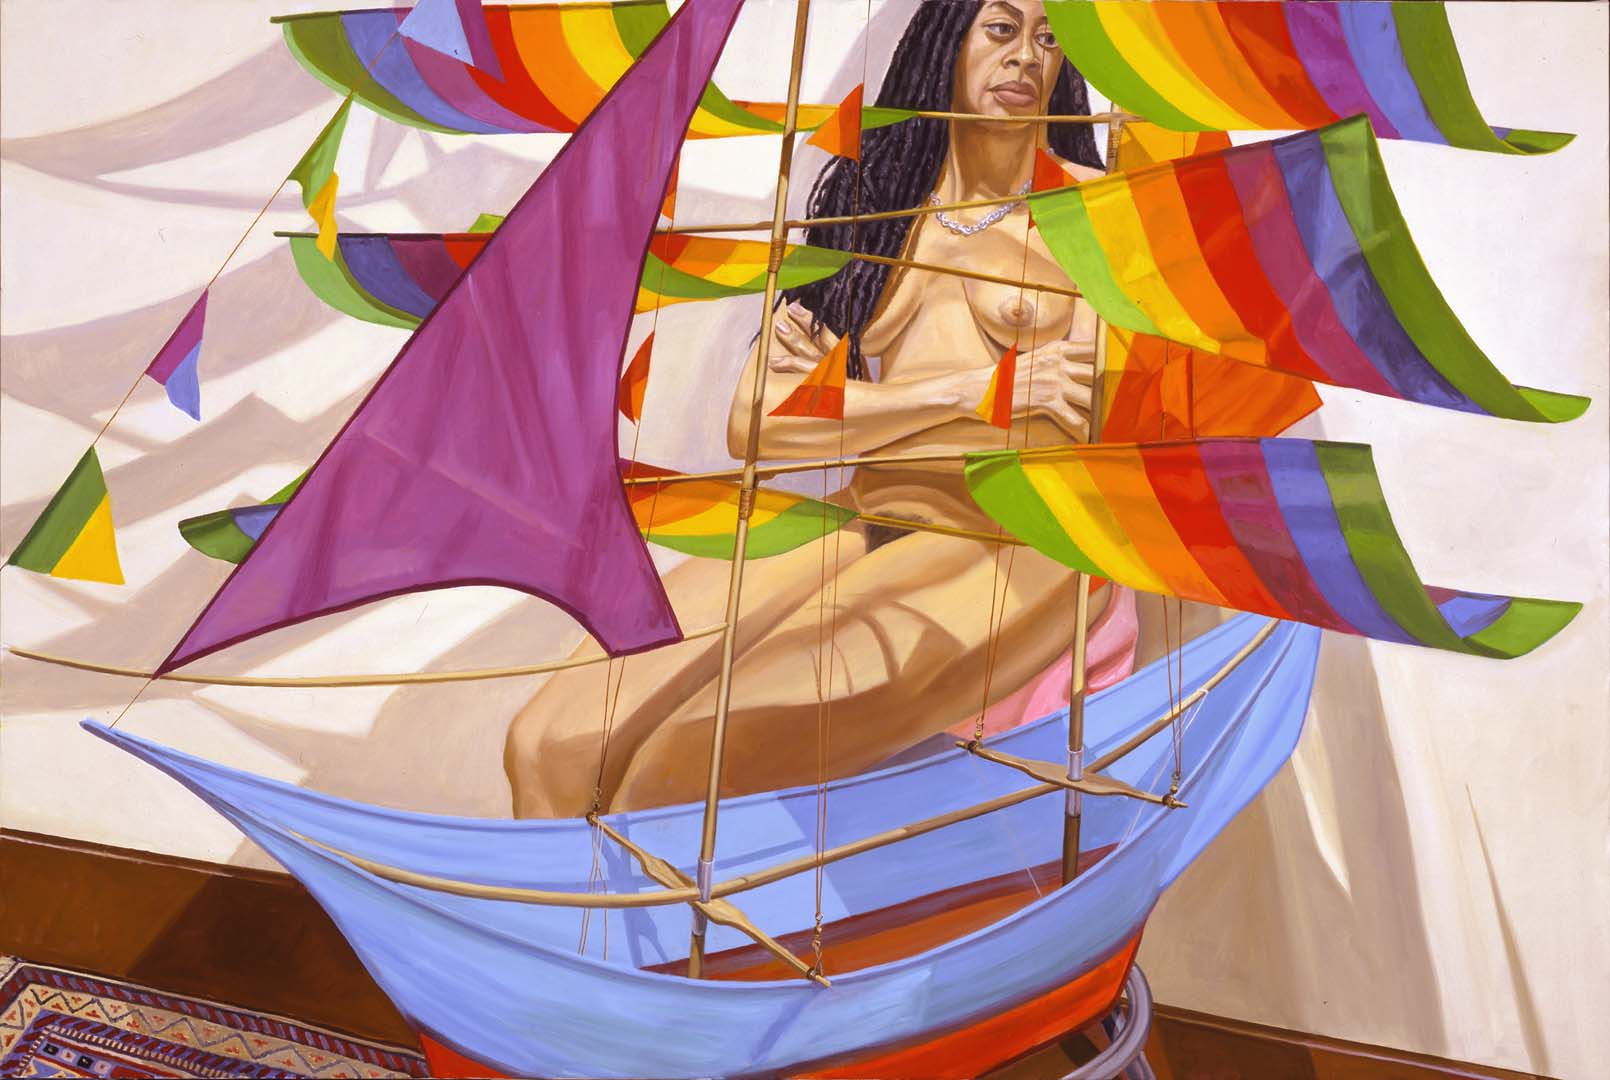 2004 Model and Chinese Kite Oil on Canvas 48 x 72